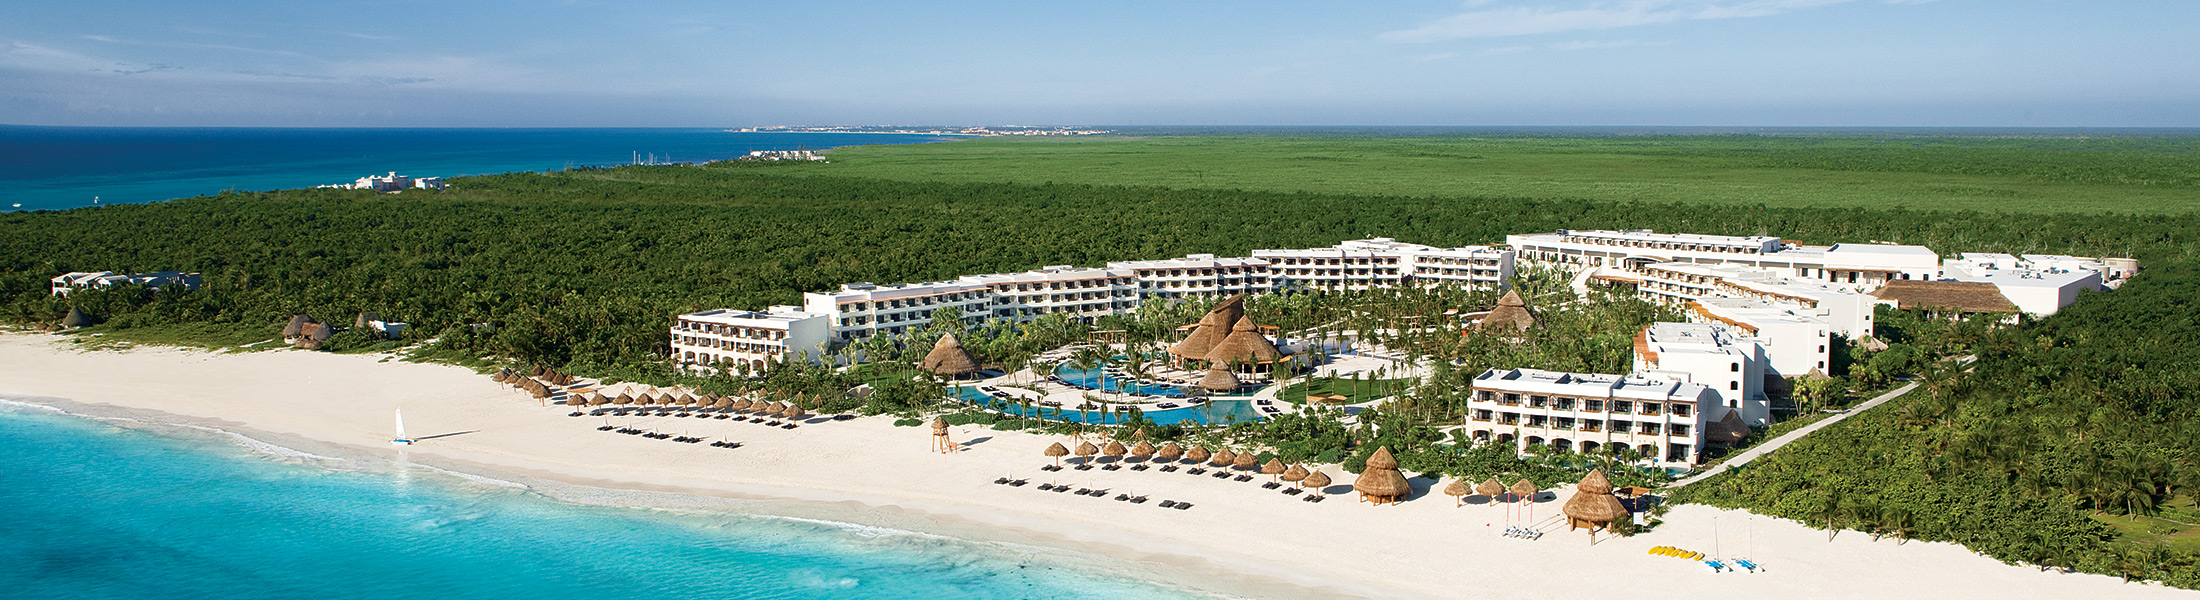 Aerial view of Secrets Maroma Beach Riviera